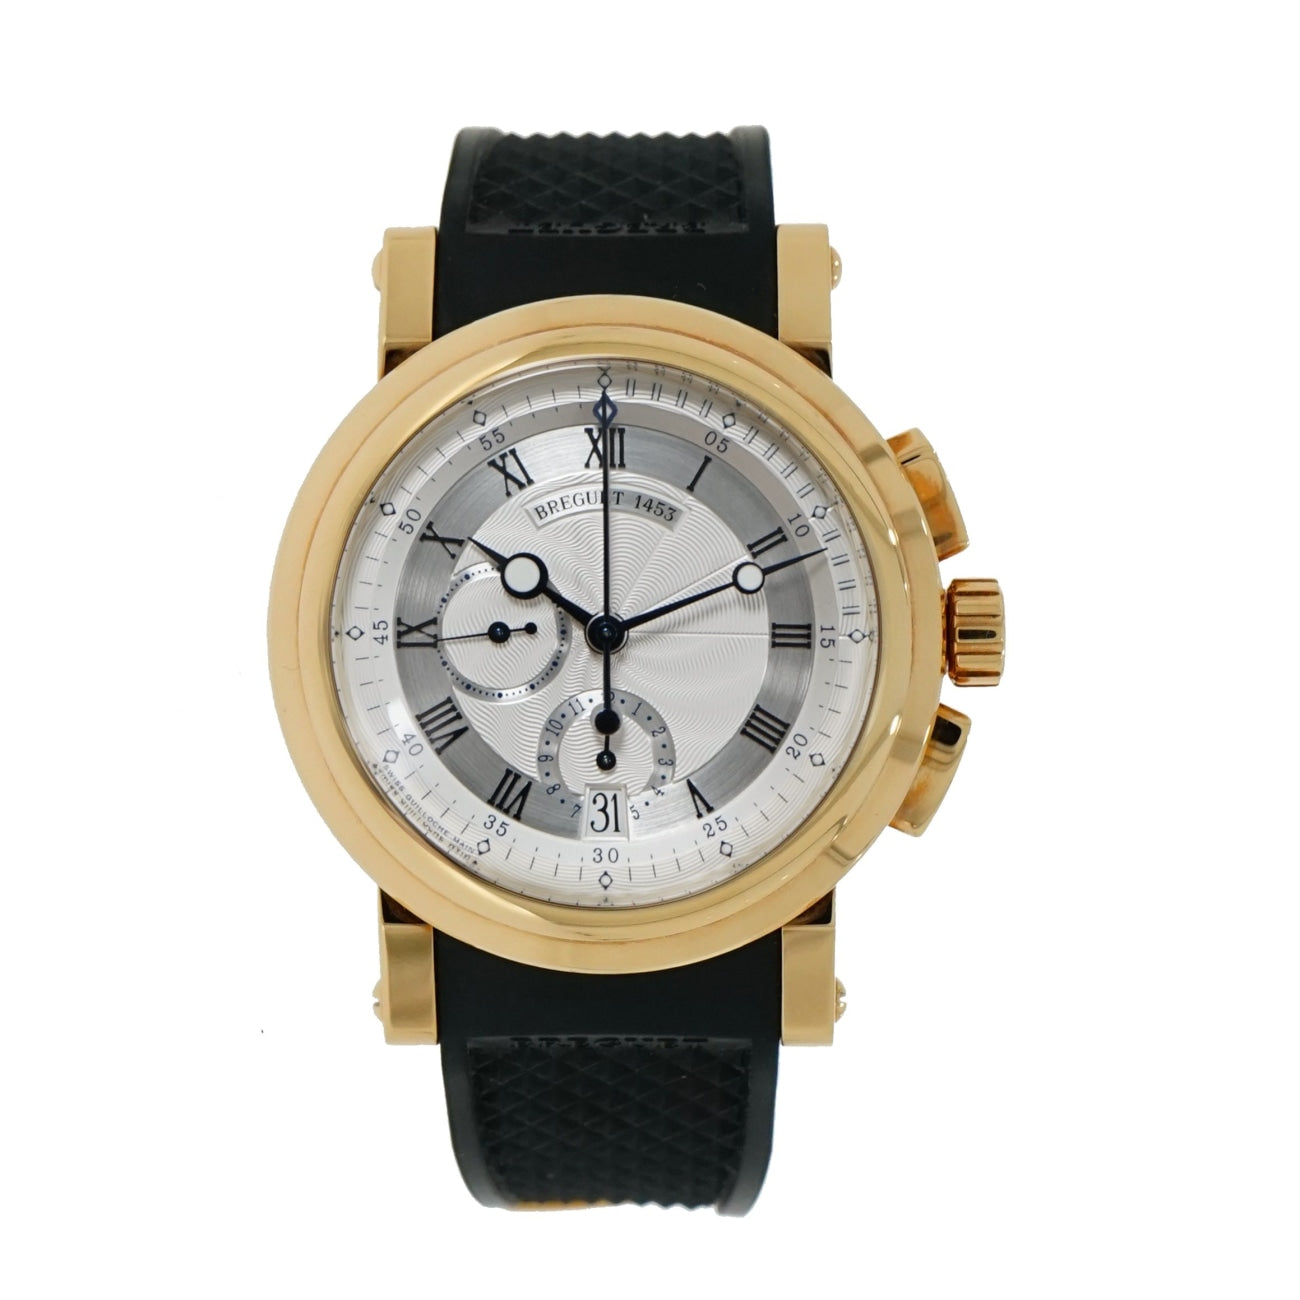 Pre-Owned Breguet Watches - Marine Chronograph in 18 Karat Yellow Gold | Manfredi Jewels